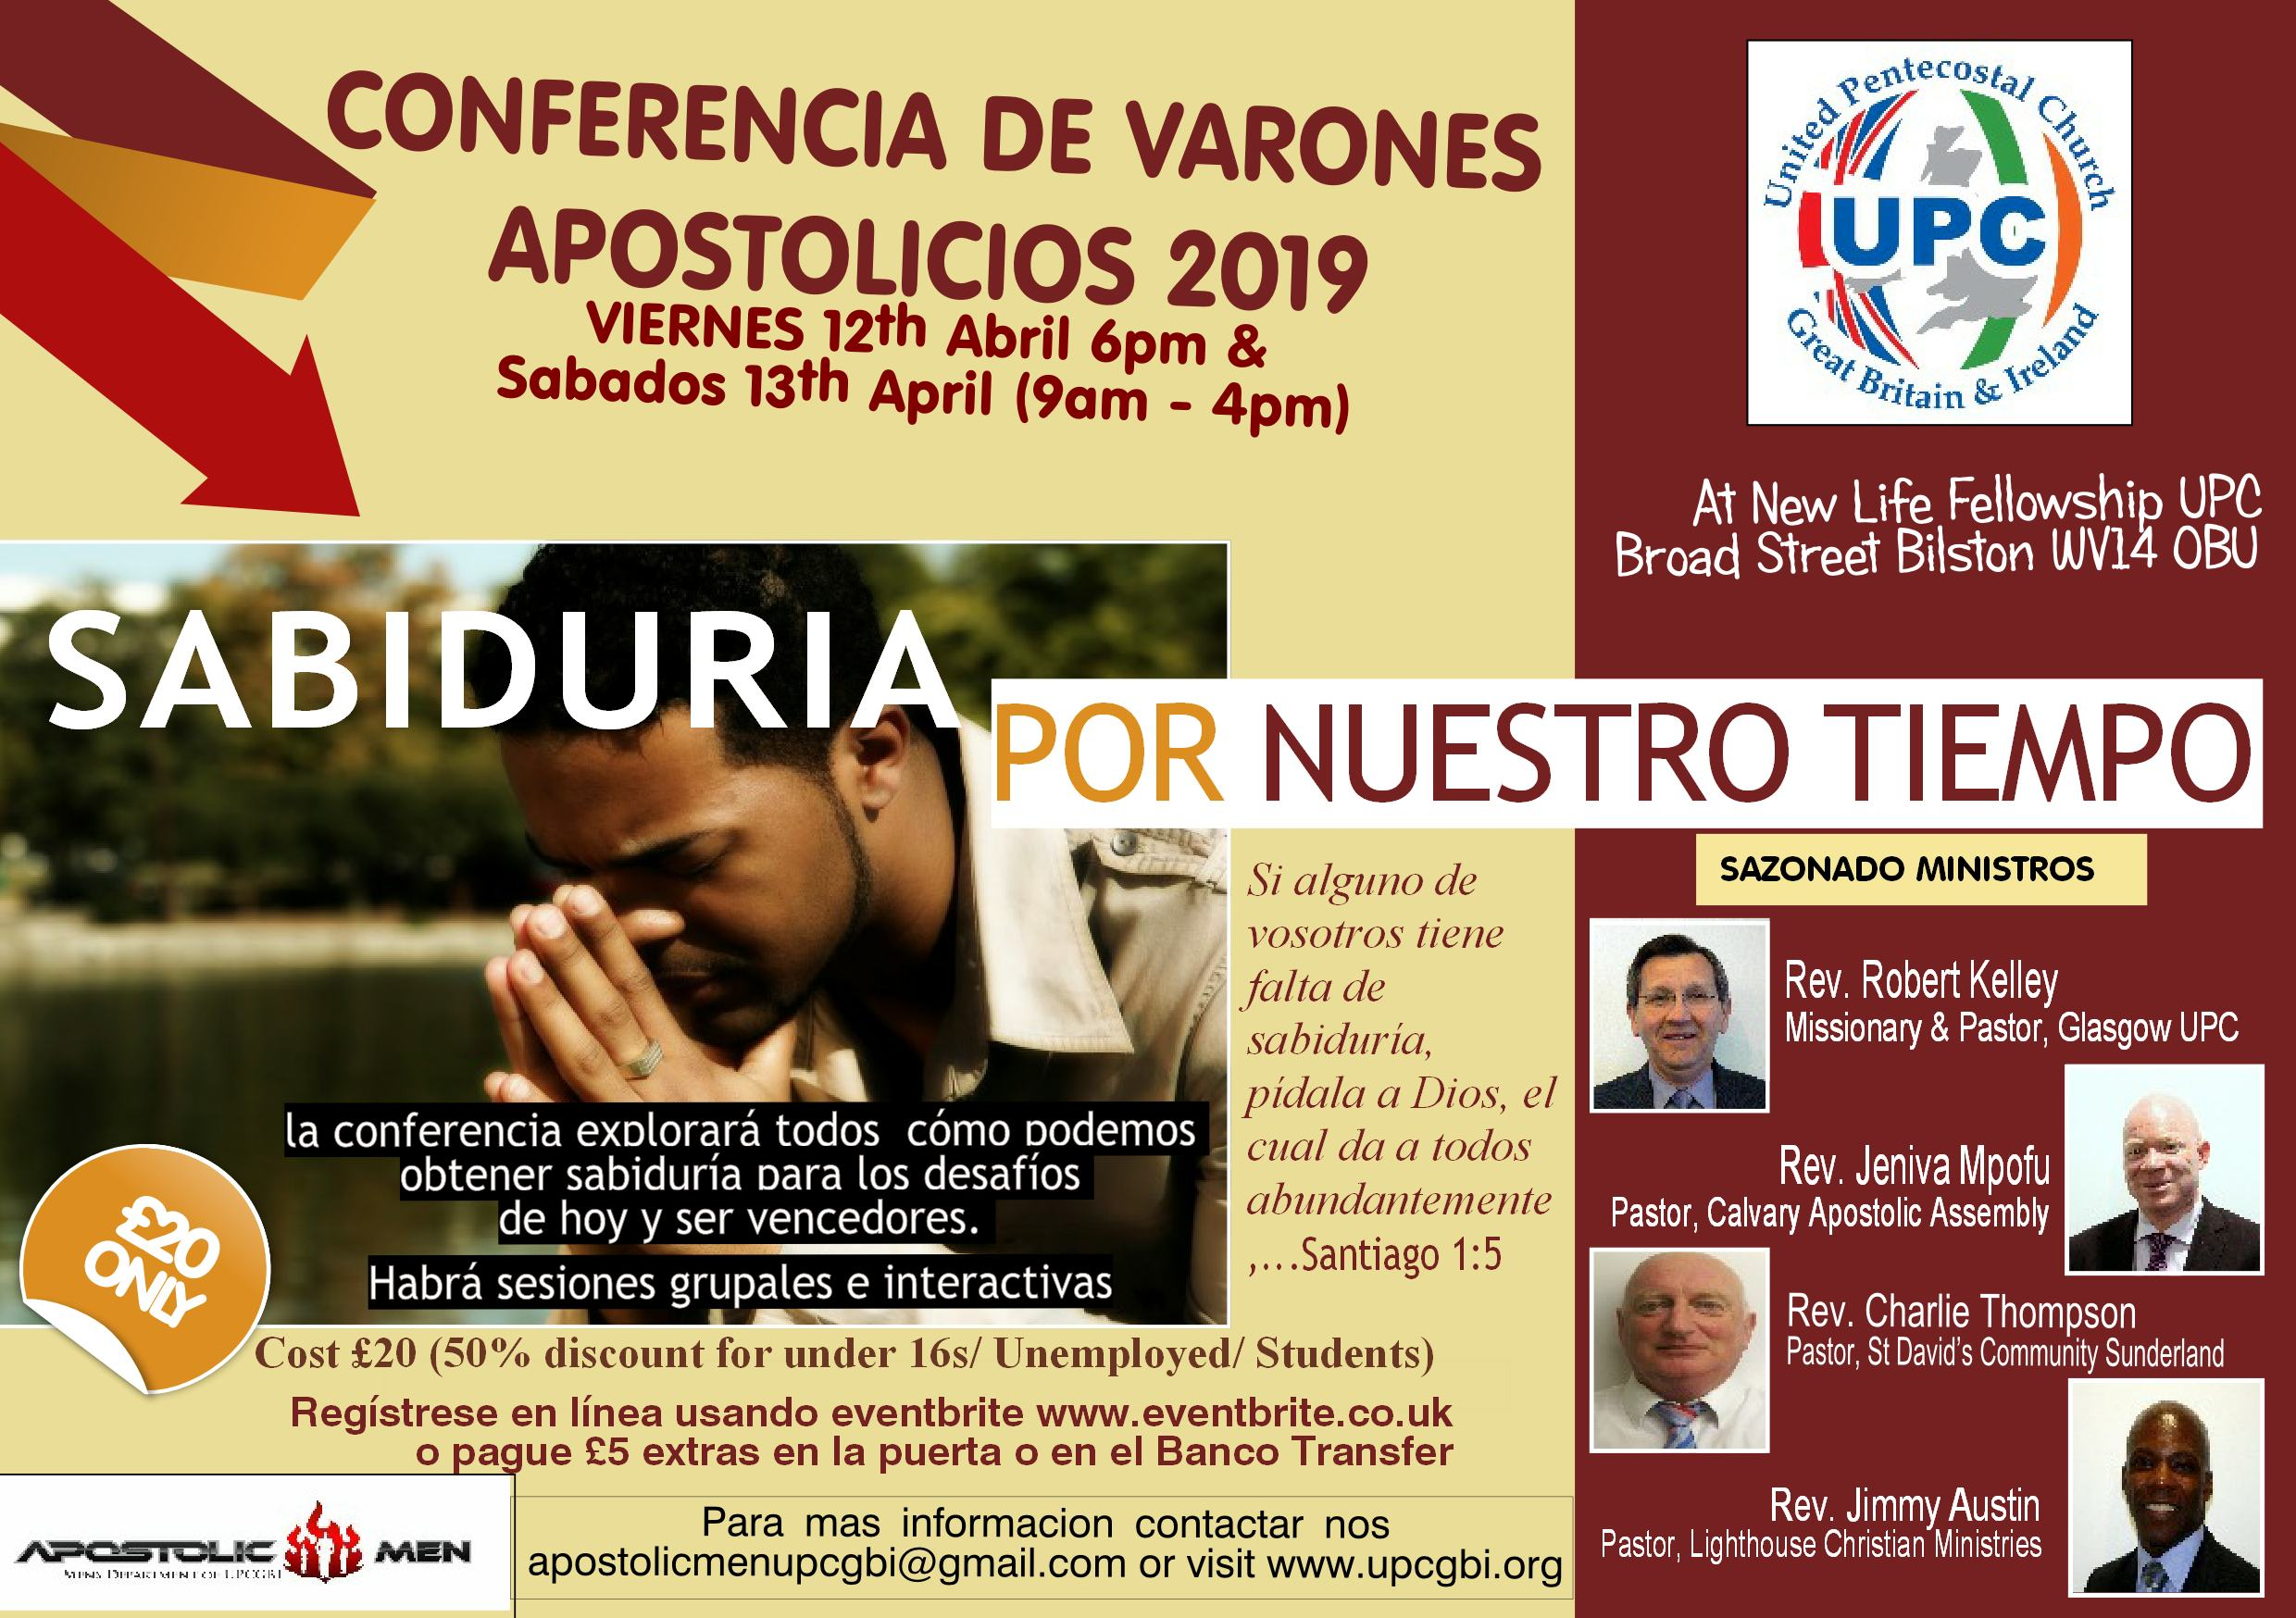 AMC 2019 - Wisdom or Our Time (Spanish flyer)